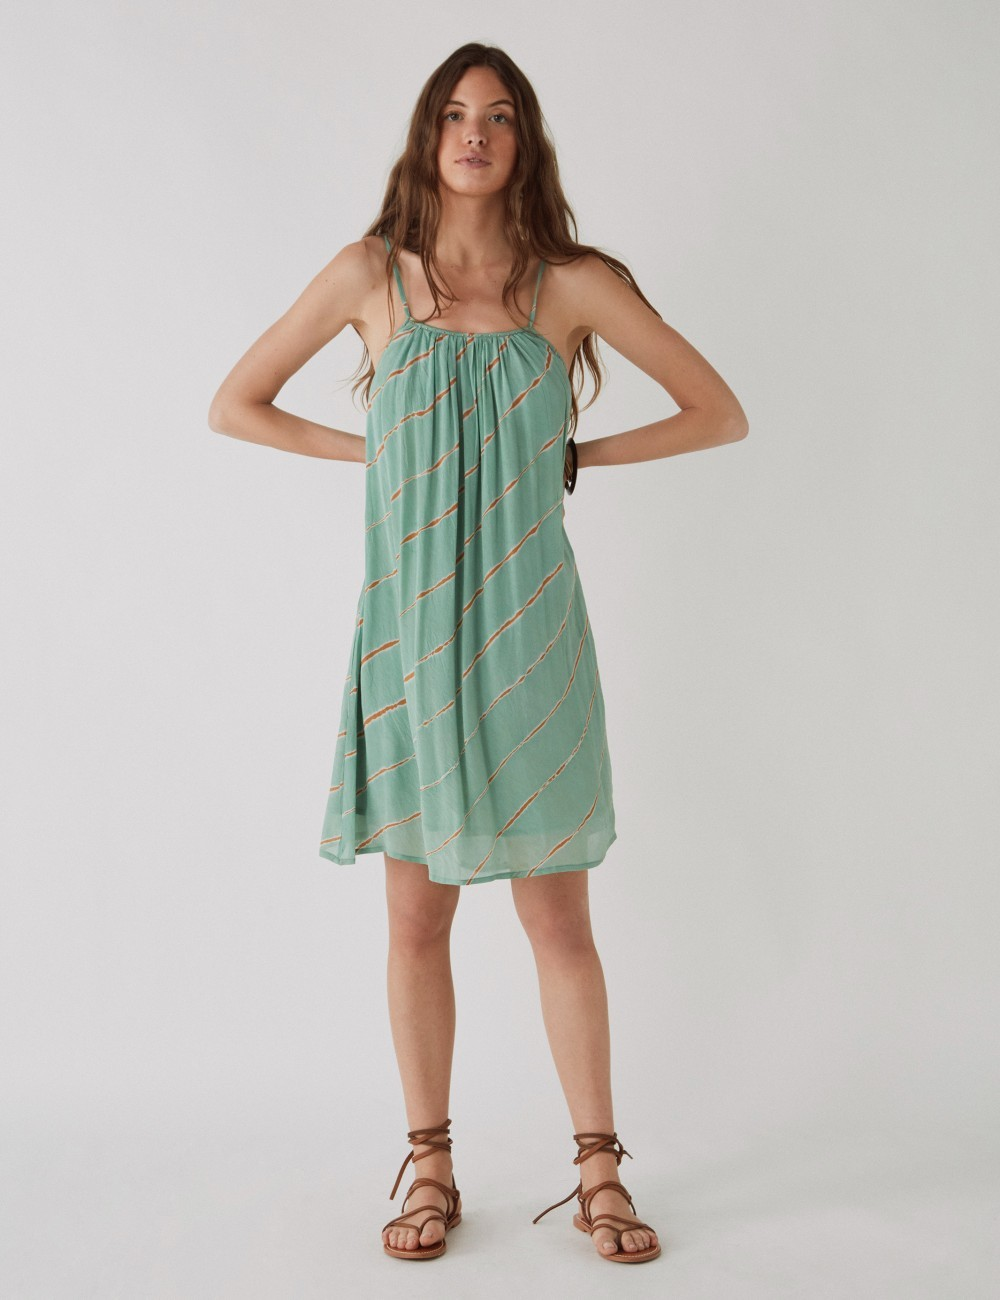 Robe courte tie and dye - Boutique L'anana(s)